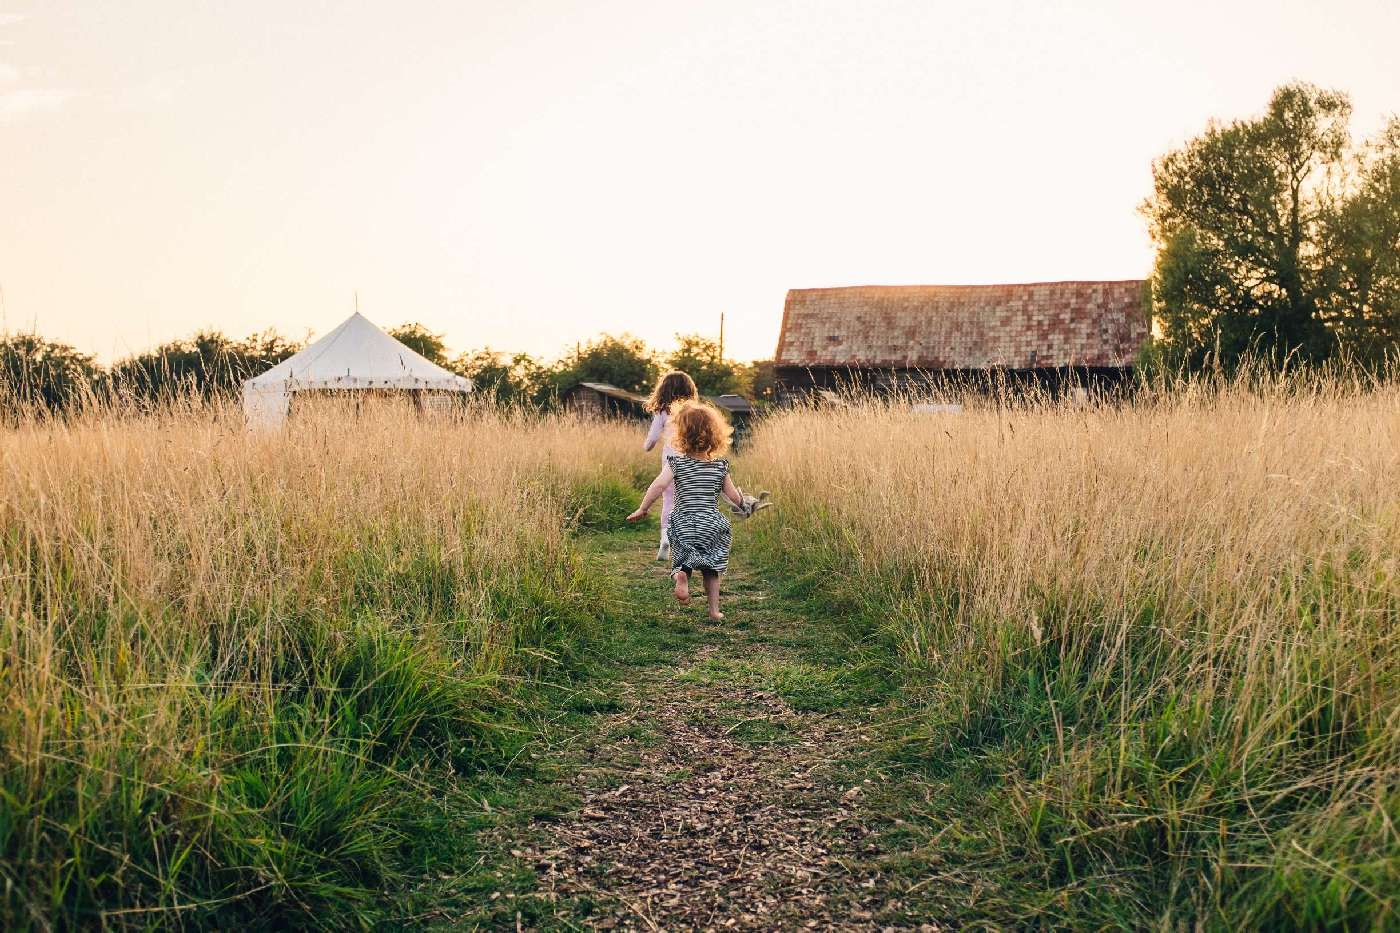 Family-friendly campsites in Norfolk